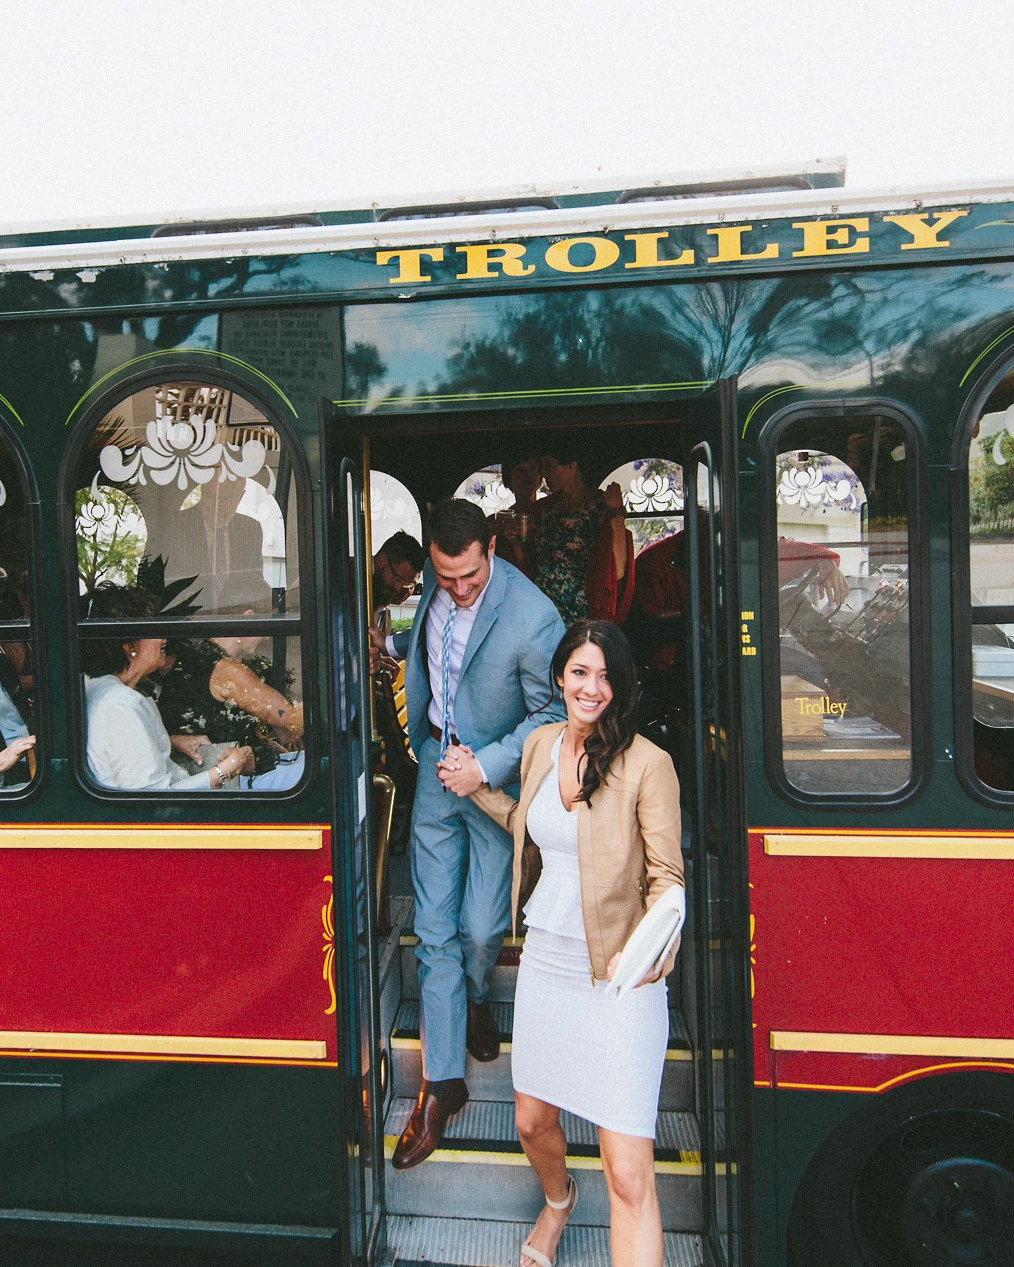 wedding-weekend-ideas-local-transportation-trolley-0416.jpg